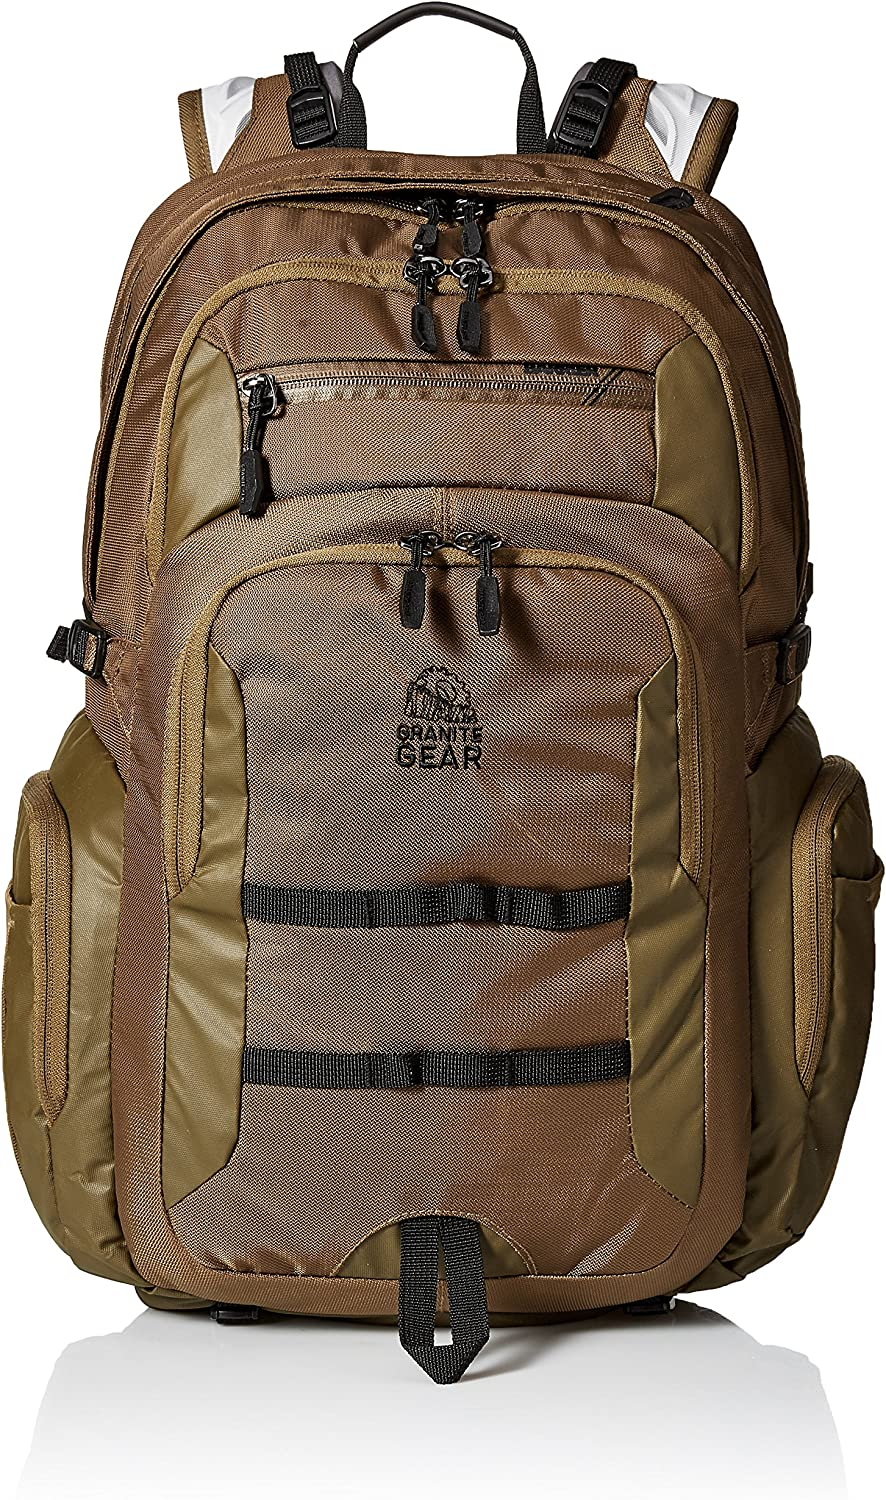 Best College Backpack